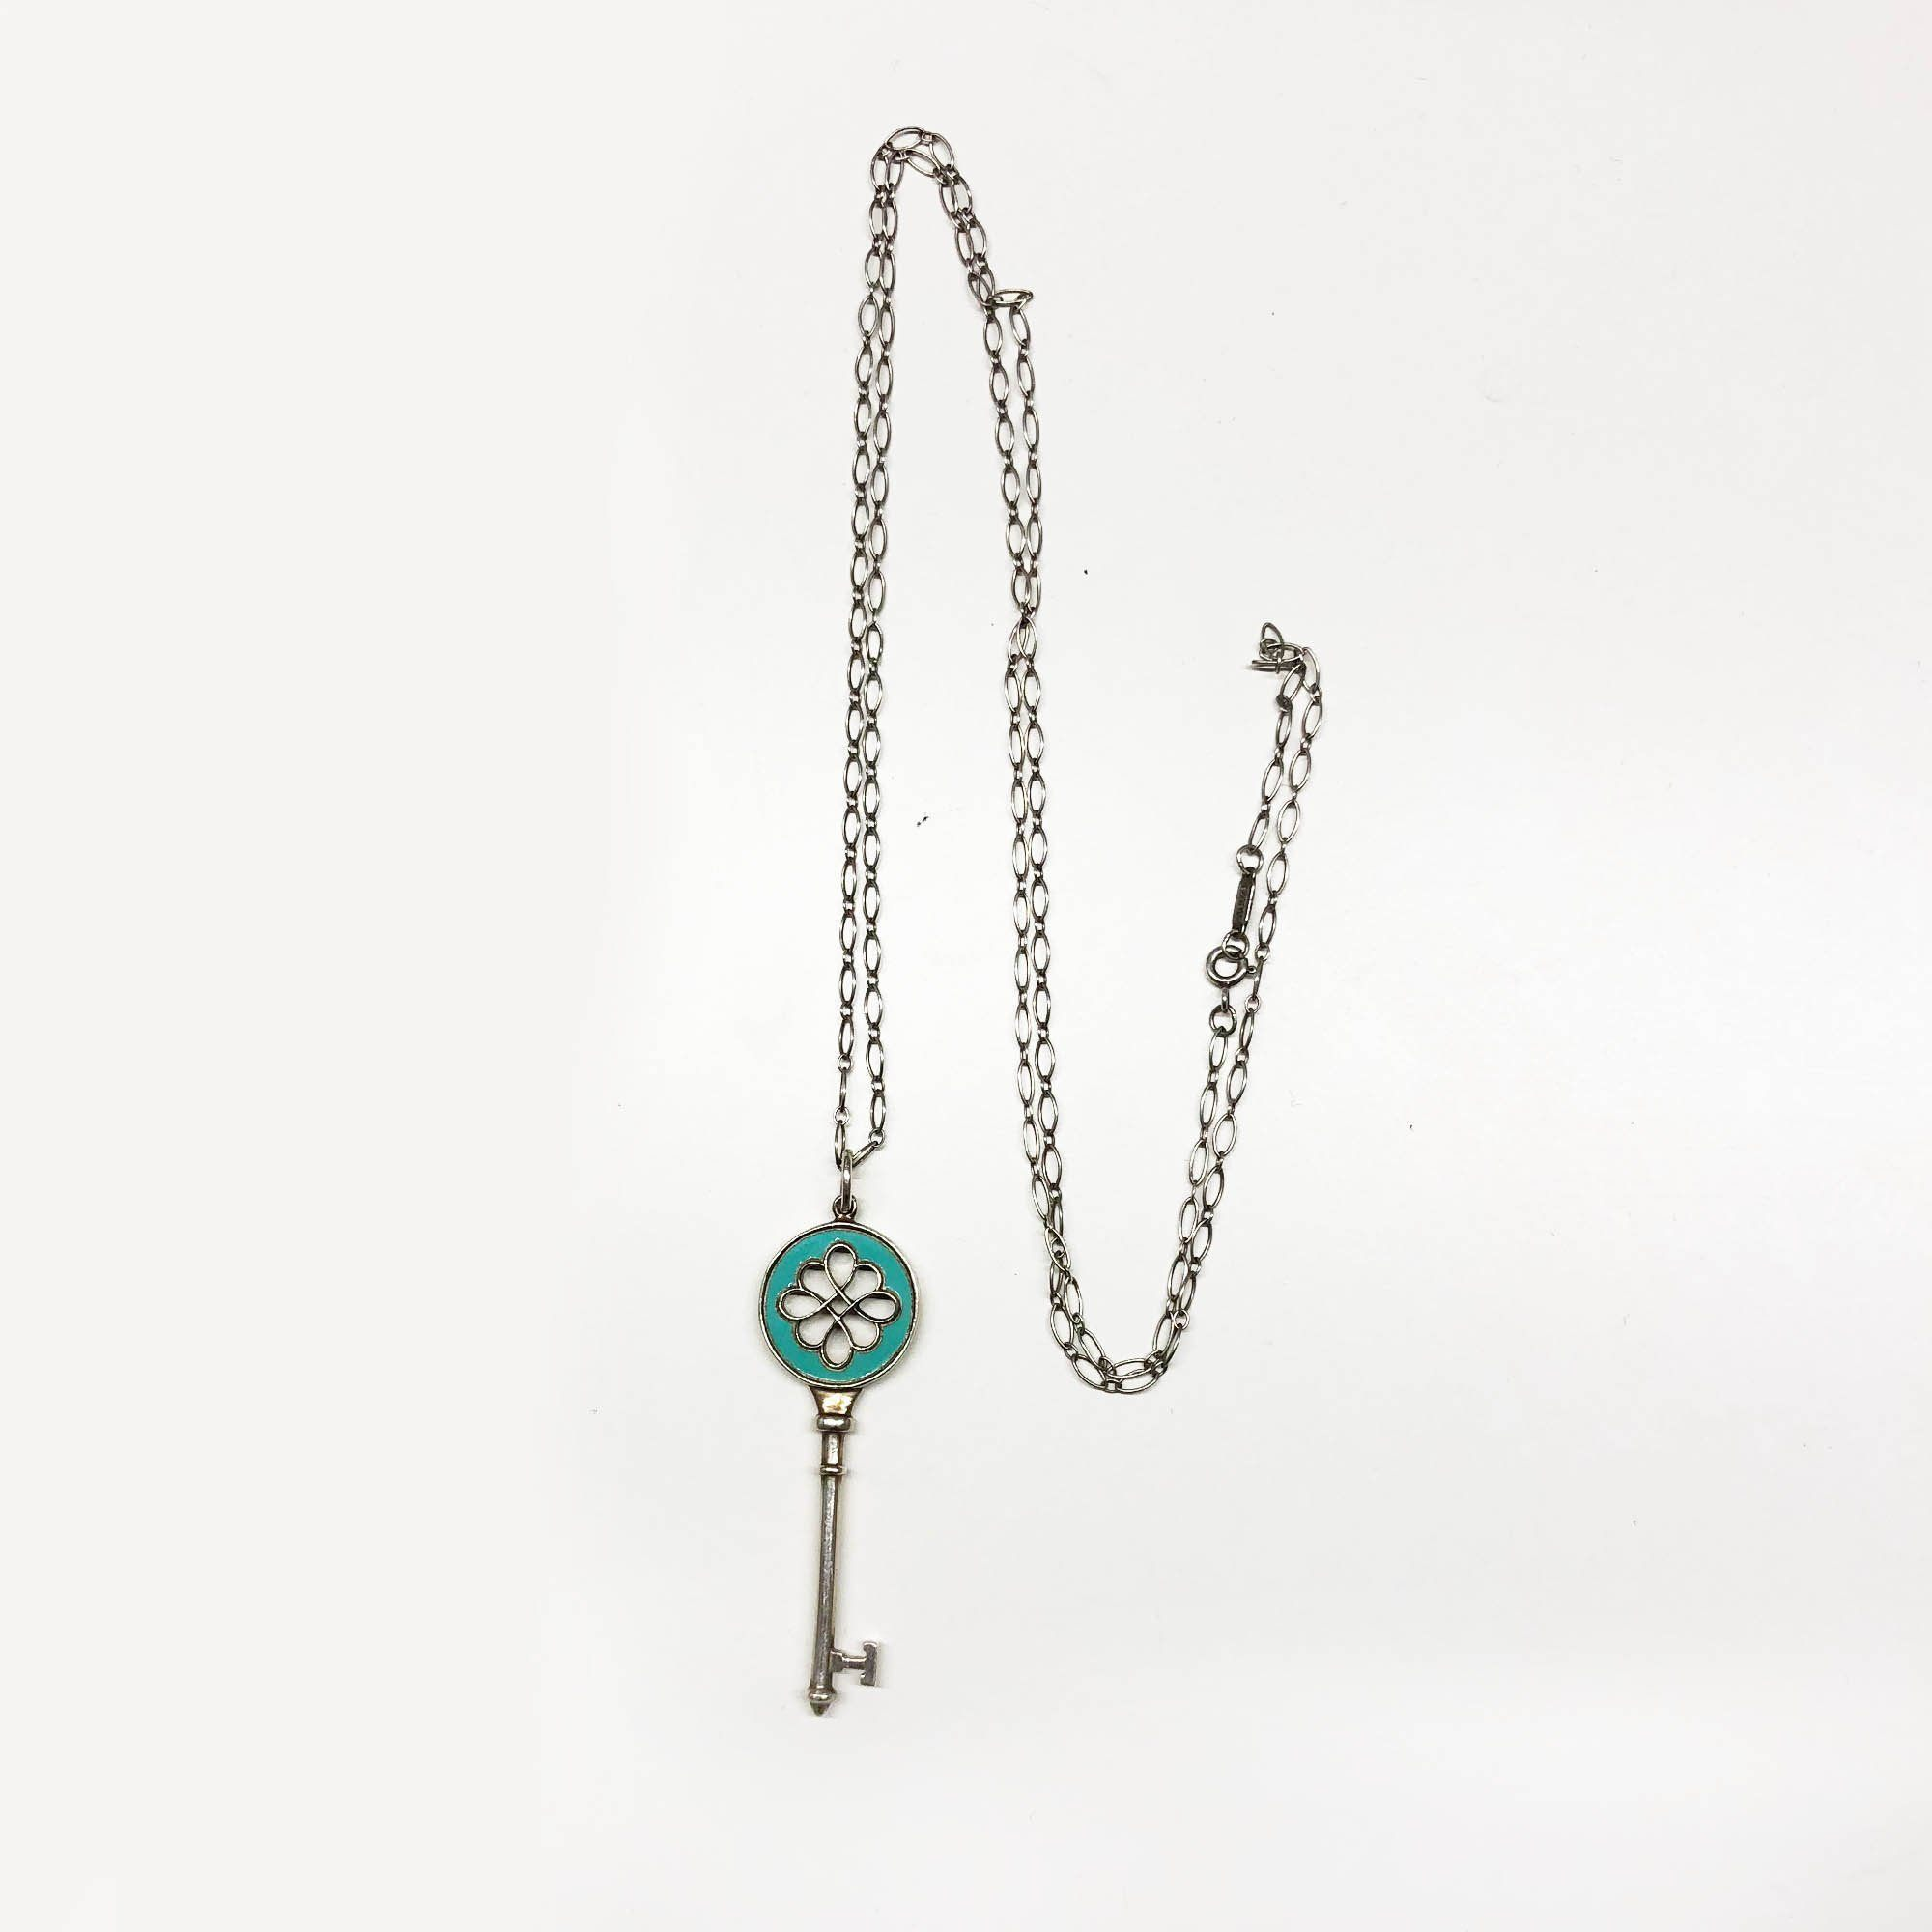 Tiffany Key Blue Necklace